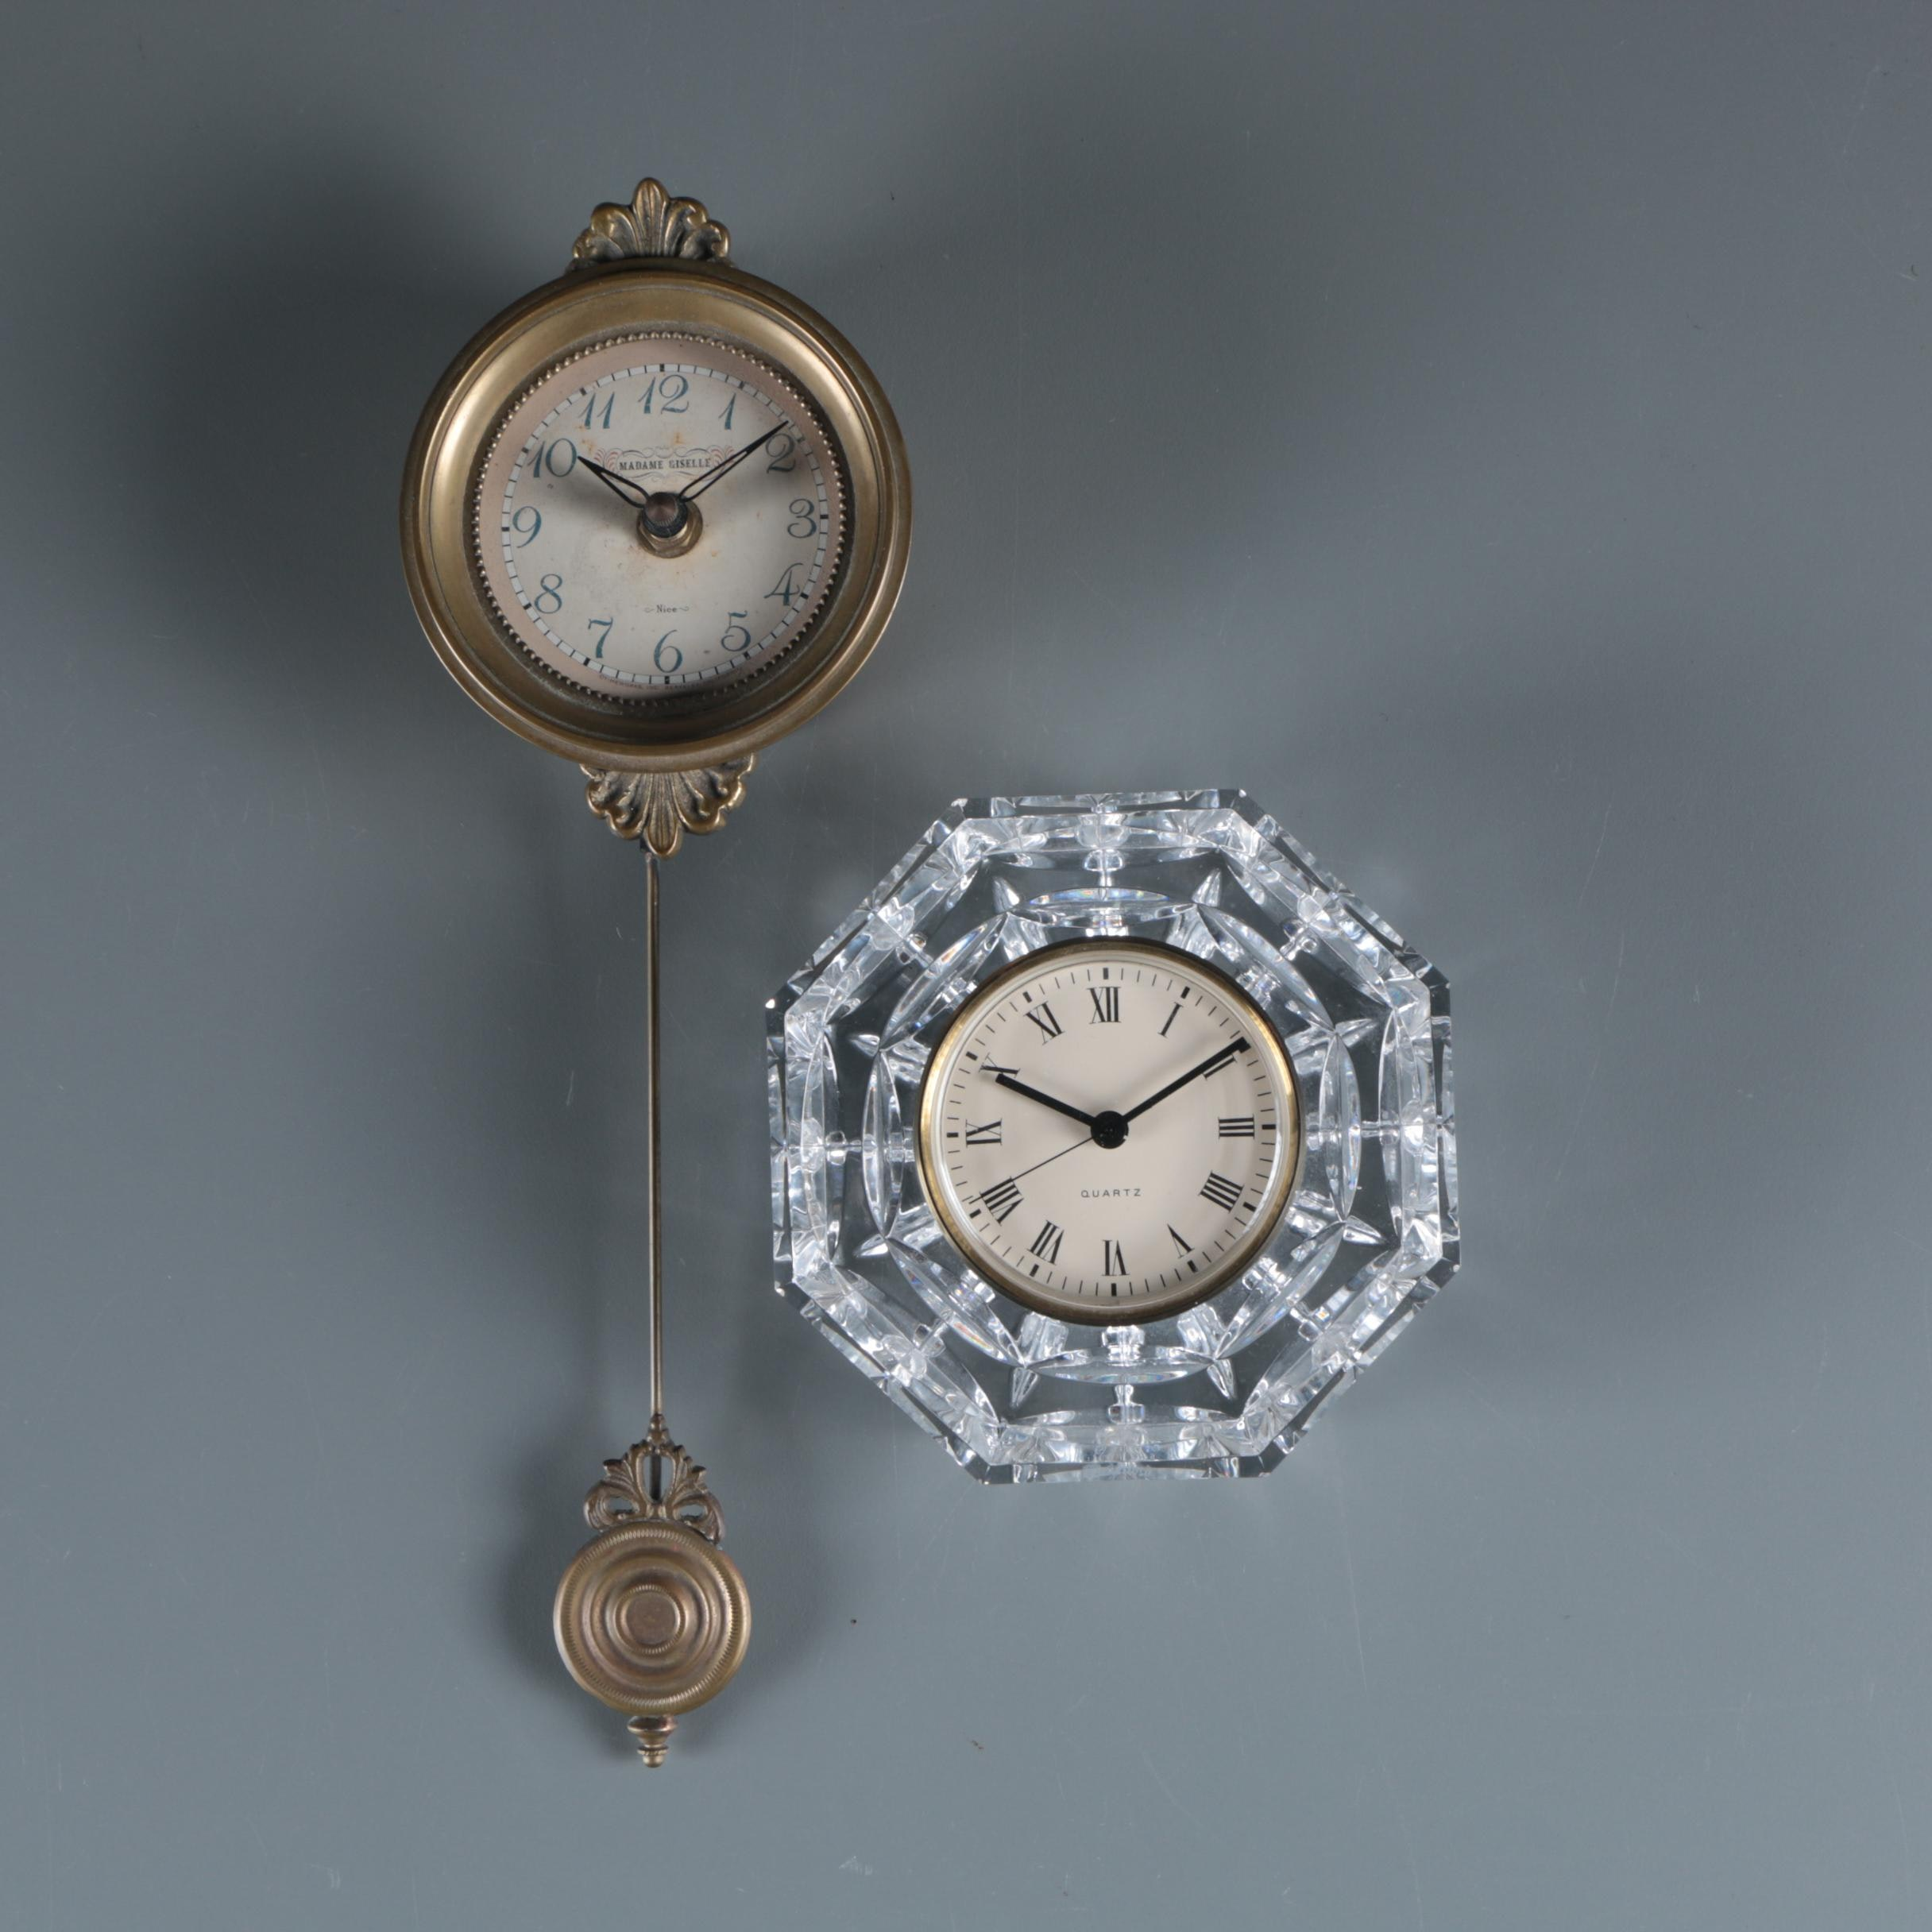 Waterford Crystal Desk Clock with Timeworks Petite Pendulum Wall Clock